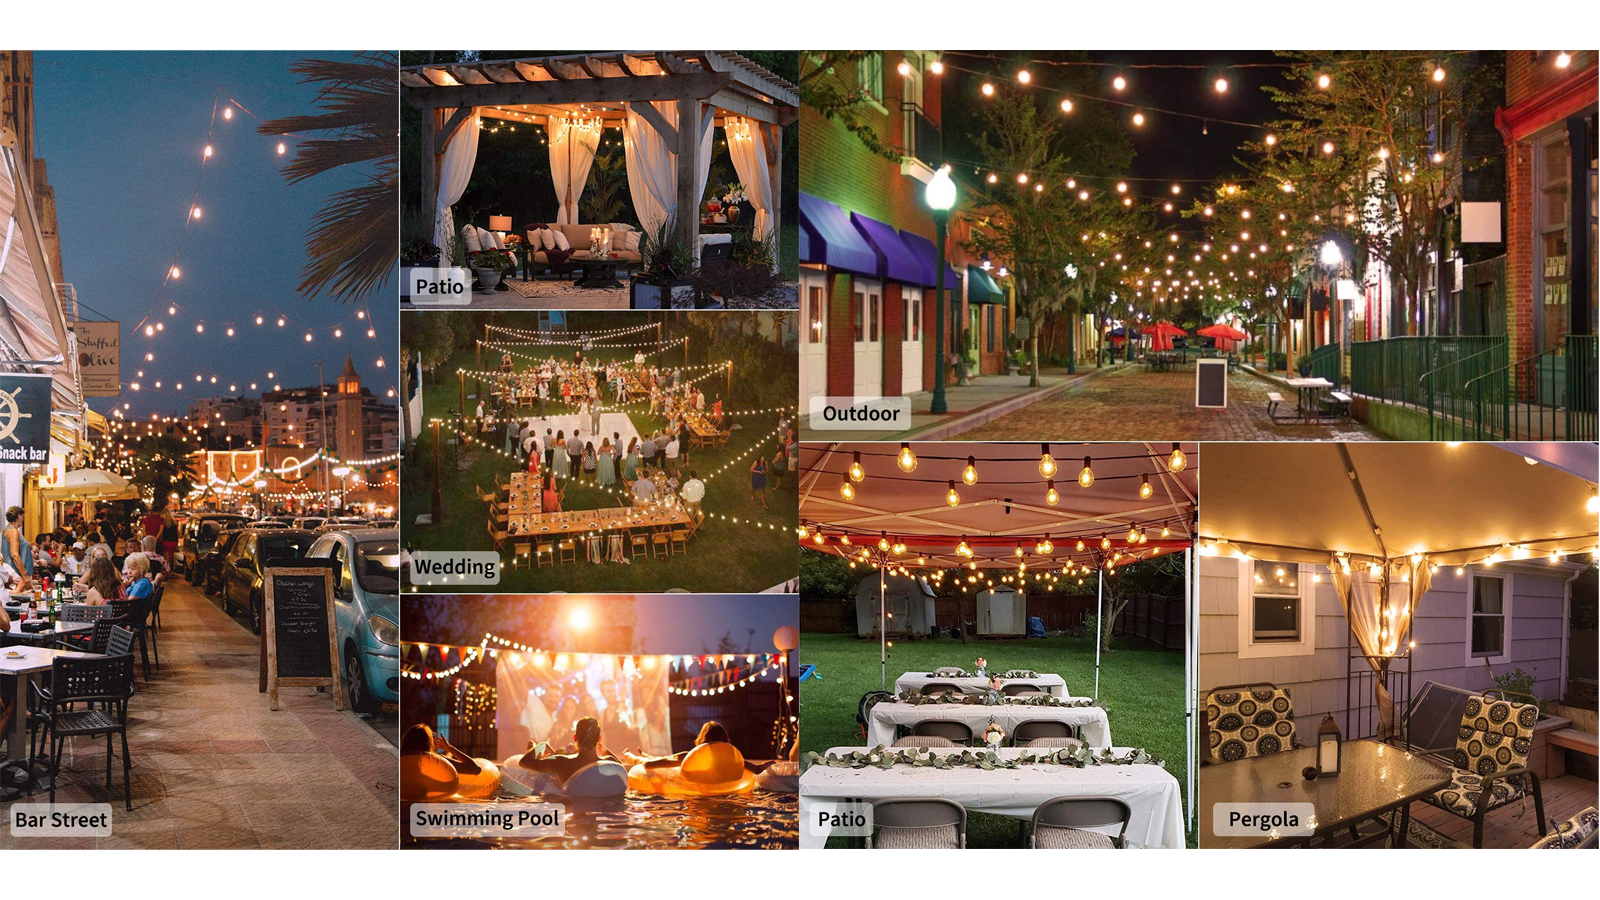 Let These Outdoor Patio String Lights Help Set the Scene for Backyard Fun